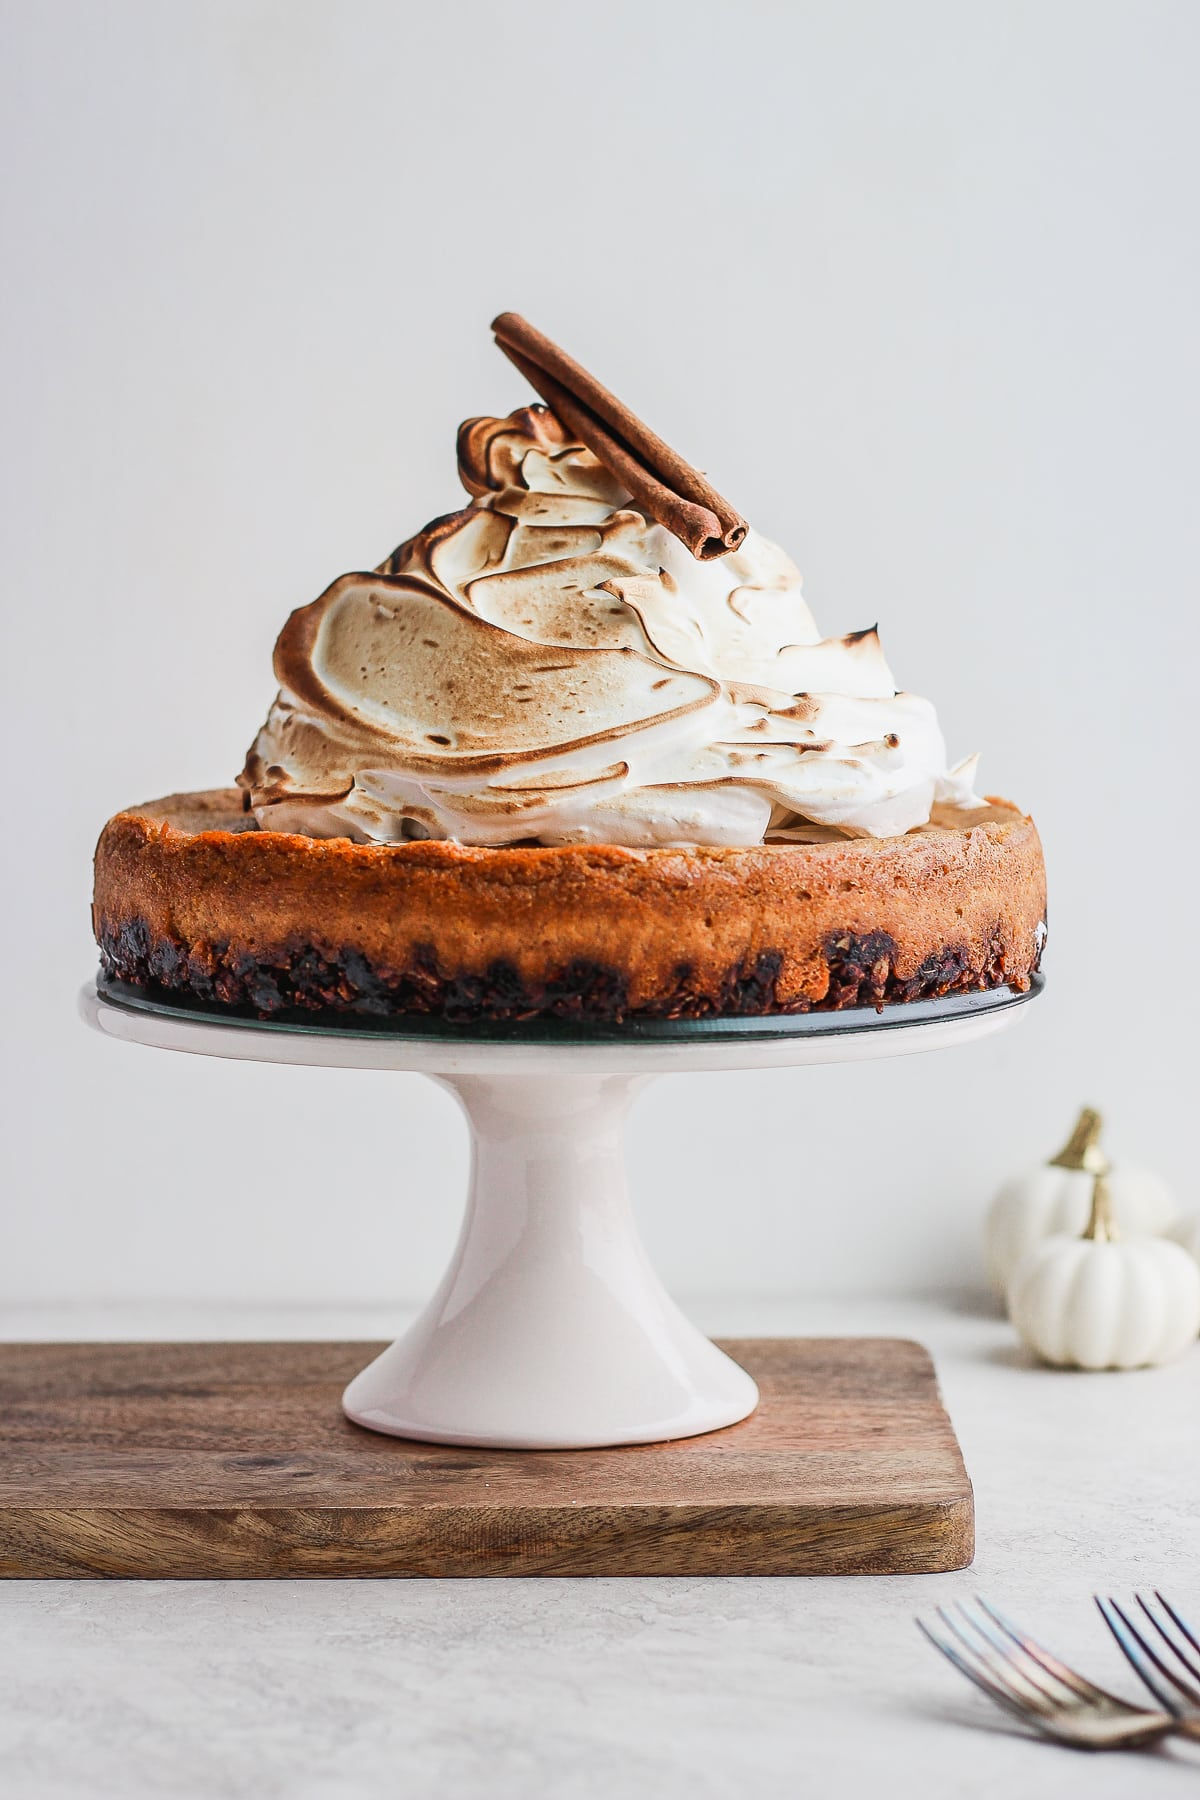 Creamy Vegan Baked Pumpkin Pie Cheesecake - a deliciously dreamy baked vegan pumpkin pie cheesecake - perfect dairy-free dessert option for Thanksgiving! #dairyfree #vegan #thanksgiving #pumpkinpie